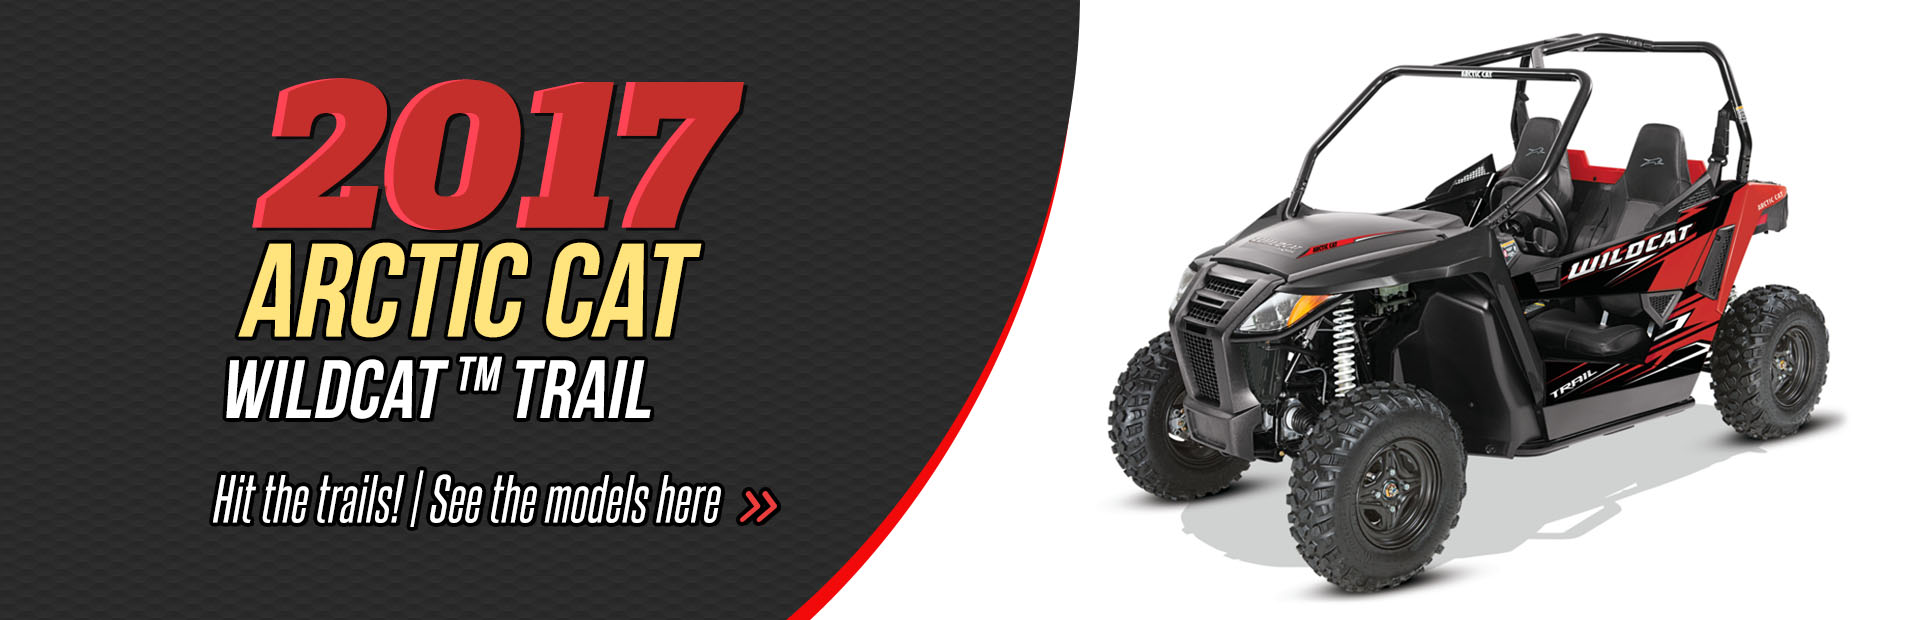 Click here to view our selection of 2017 Arctic Cat Wildcat™ Trail side x sides!